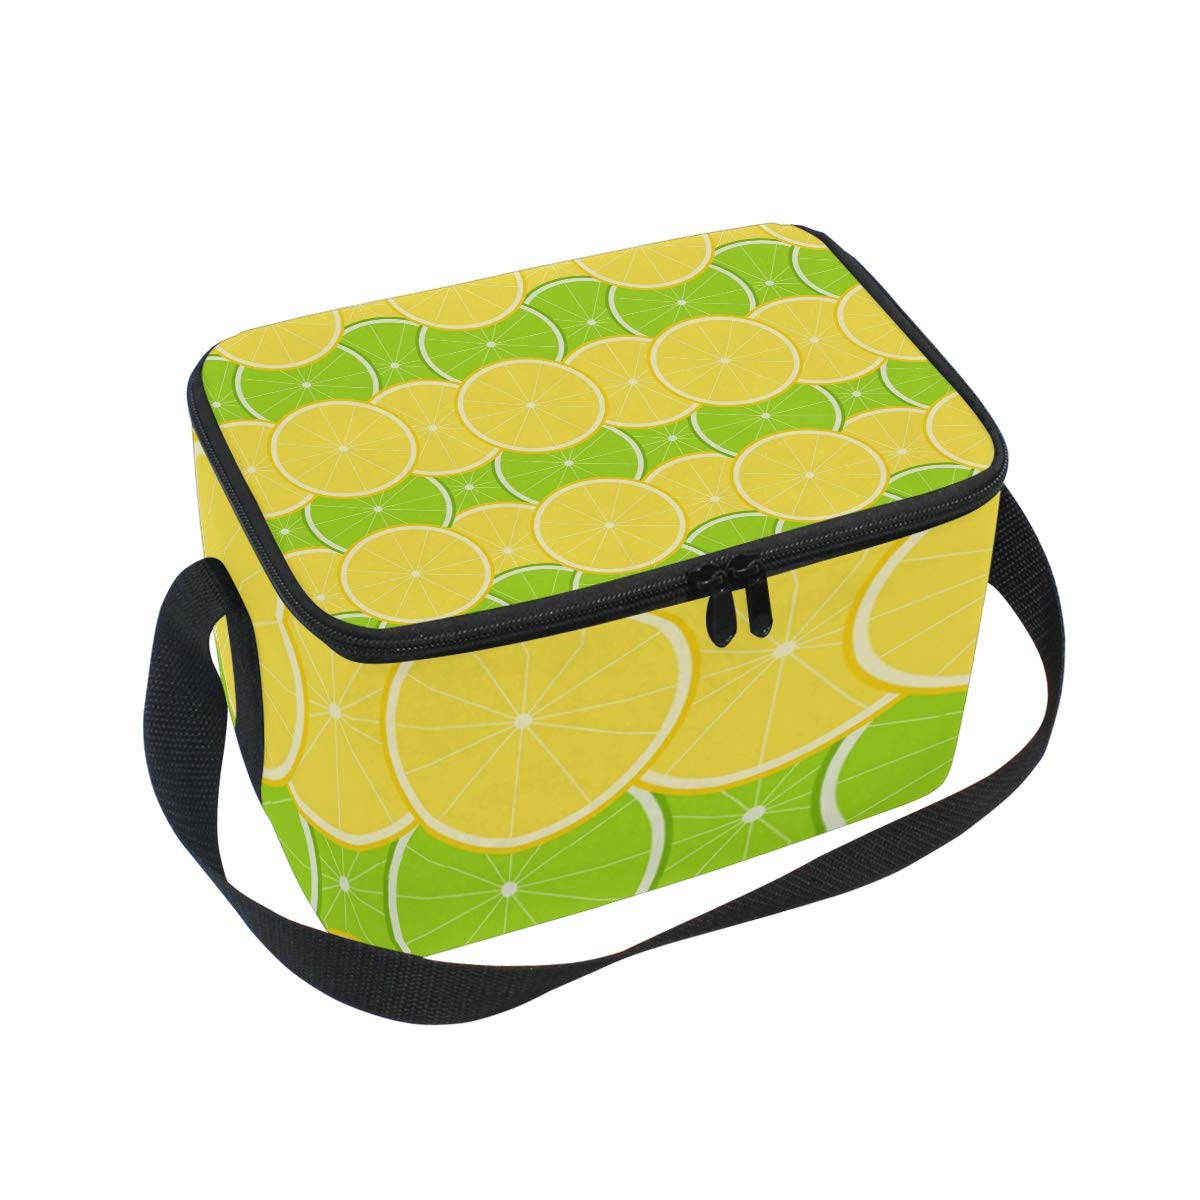 Amazon.com: Yellow Lemon And Lime Adult Lunch Box Lunch Insulated ... svg royalty free download